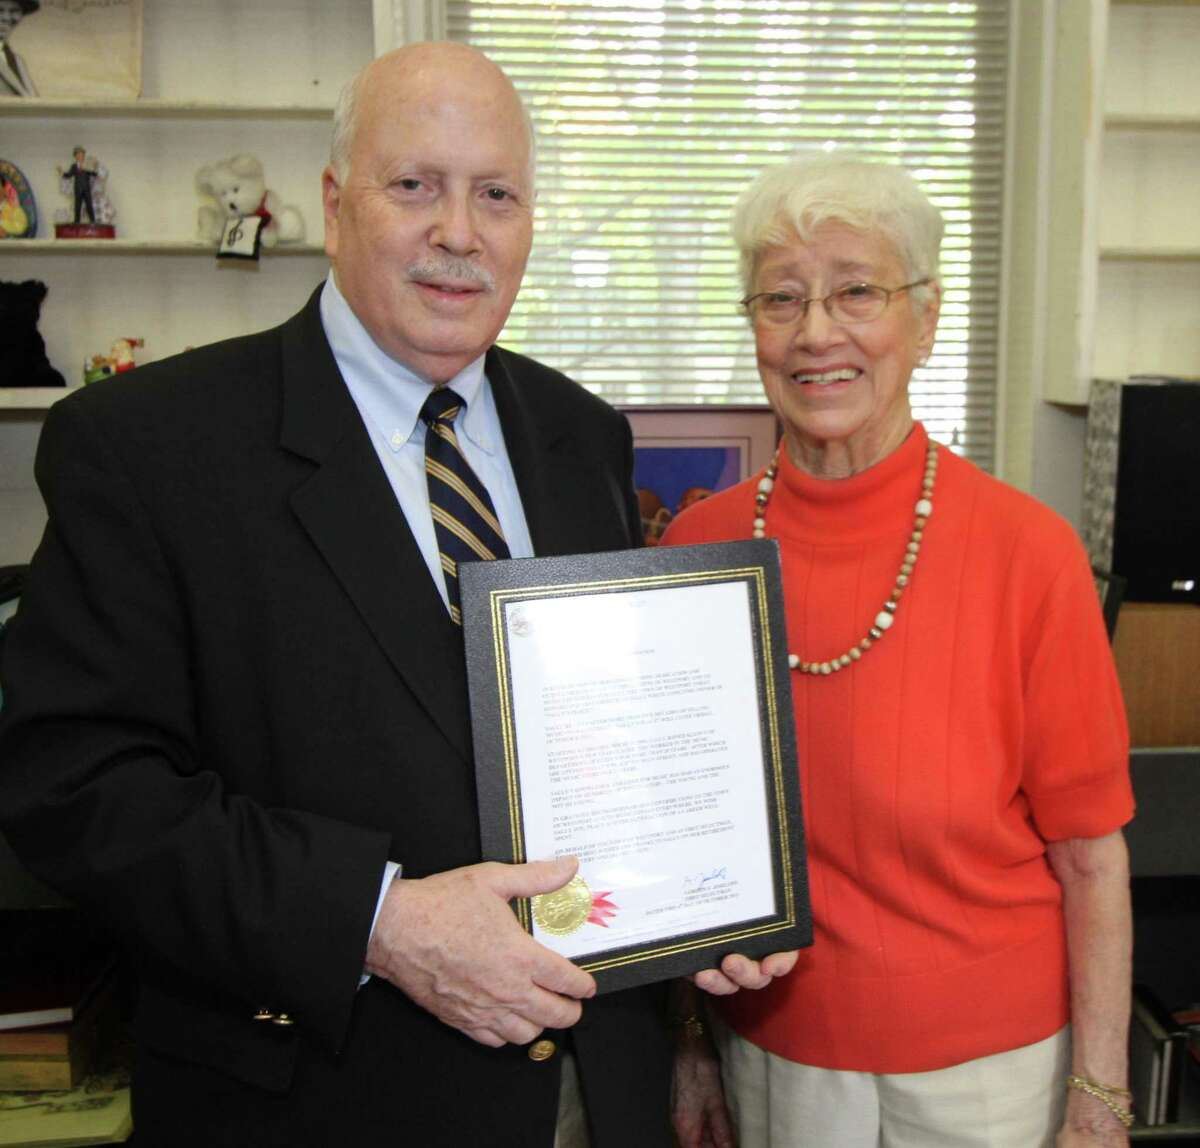 First Selectman Gordon Joseloff displays a commendation from the town to Sally White, before presenting it to her at town hall on Thursday, Oct. 4. White provided music to several generations of Westporters over a half century before closing her Sally's Place record shop this summer.